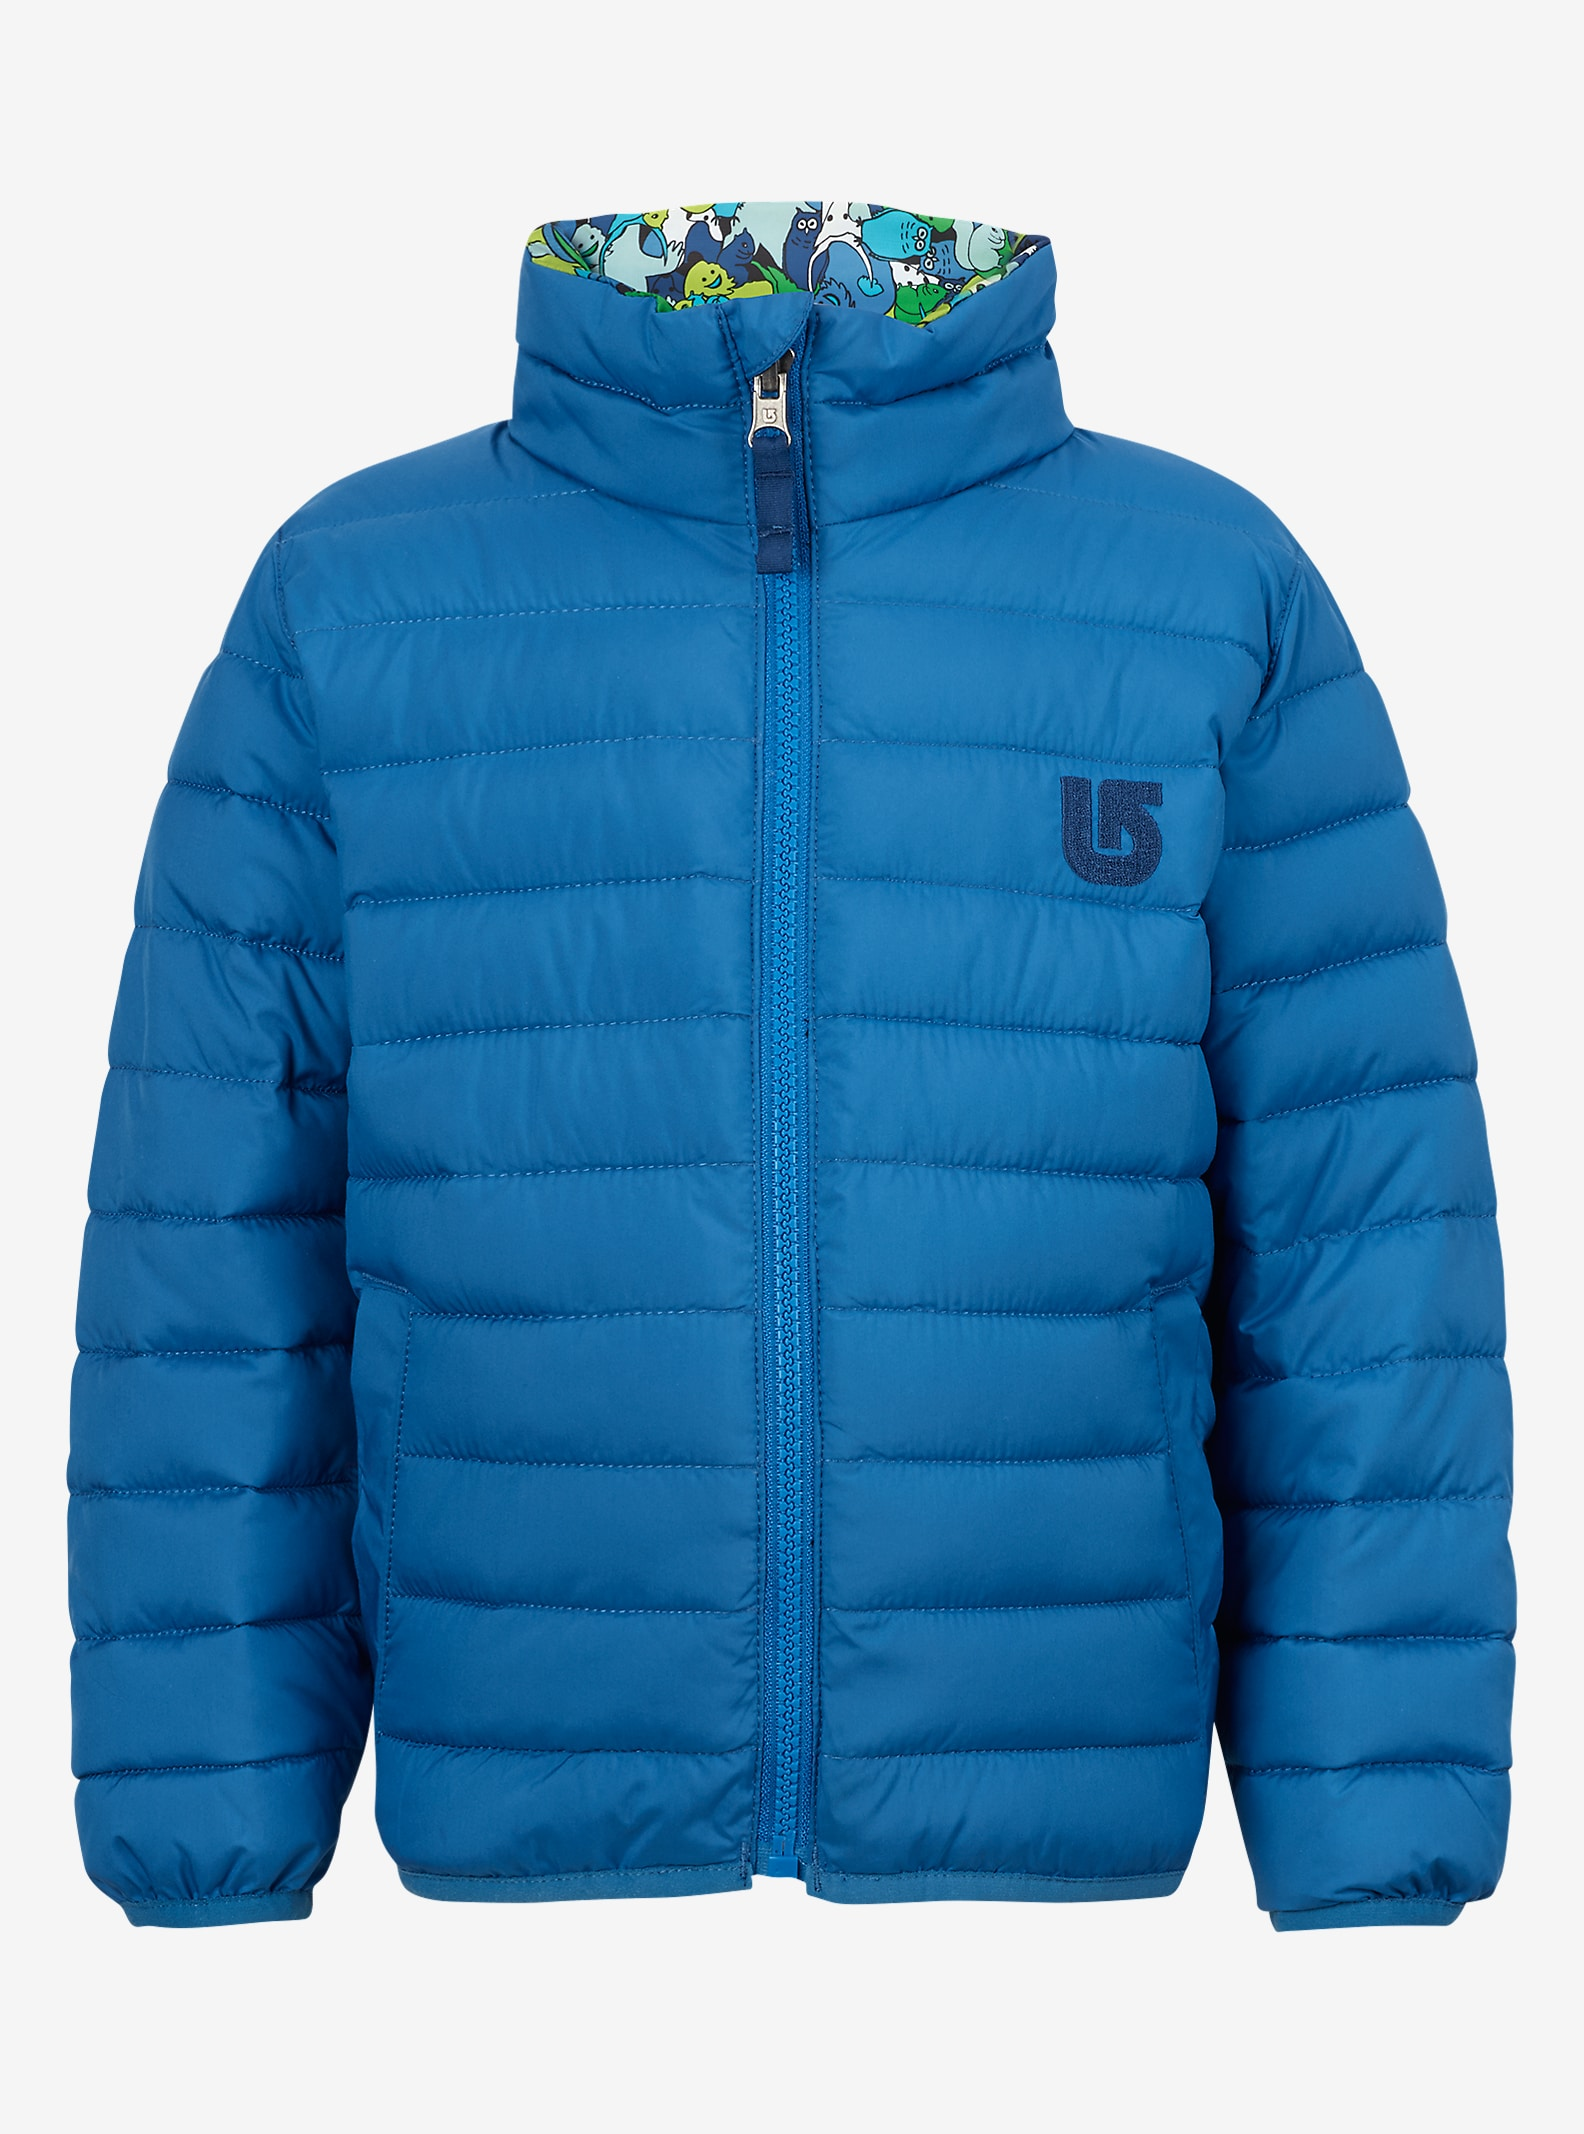 Burton Minishred Flex Wendbare Steppjacke angezeigt in Glacier / Sasquatch